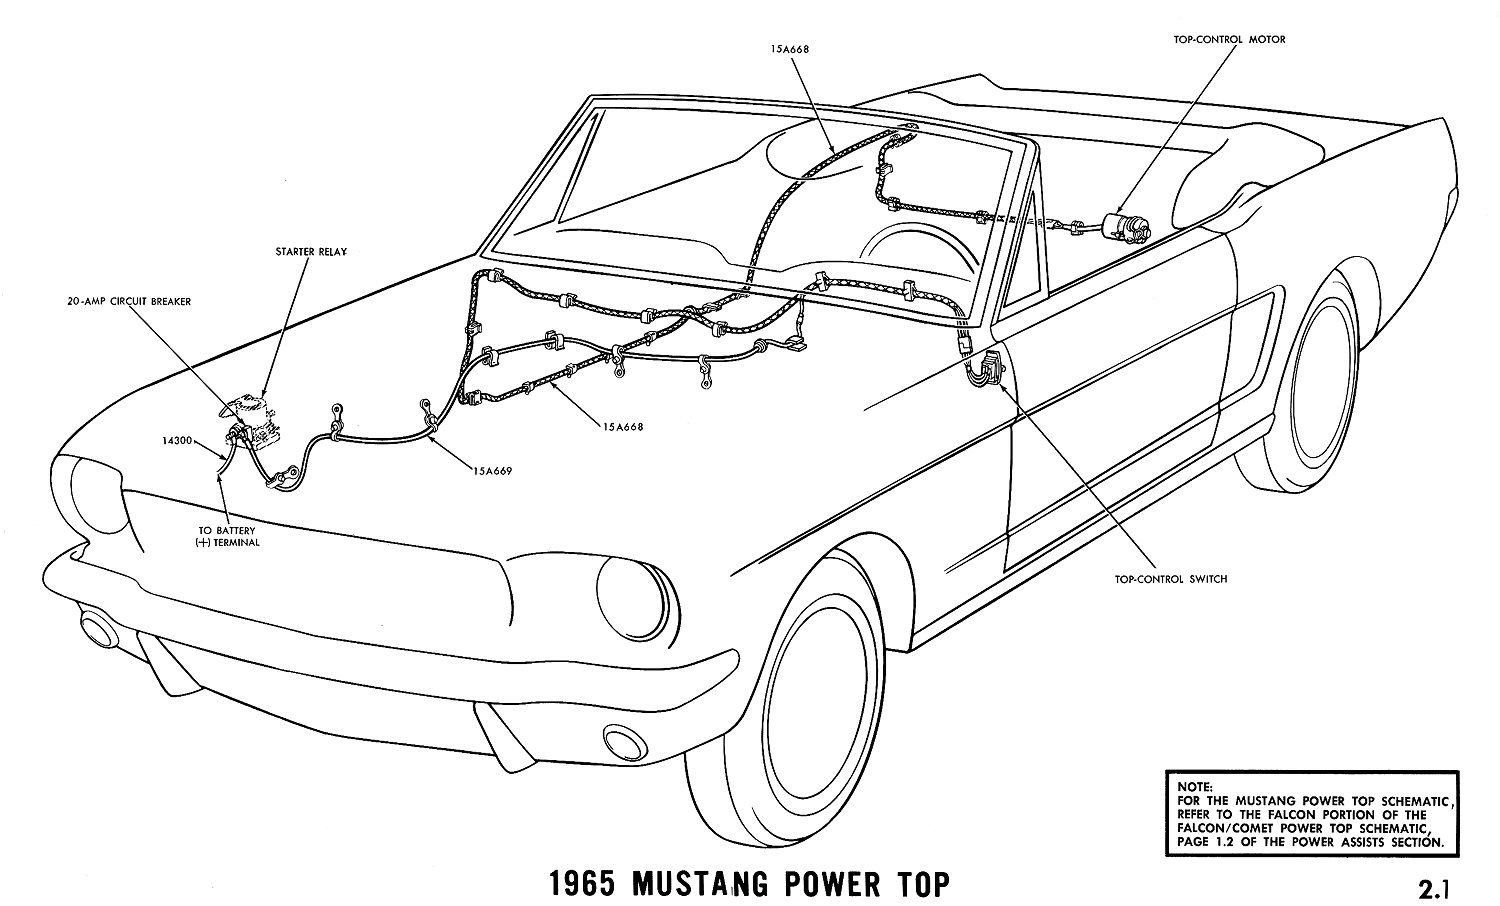 1965 mustang wiring diagrams average joe restoration rh averagejoerestoration com 1988 Ford Mustang Wiring Diagram 2002 Ford Mustang Wiring Diagram